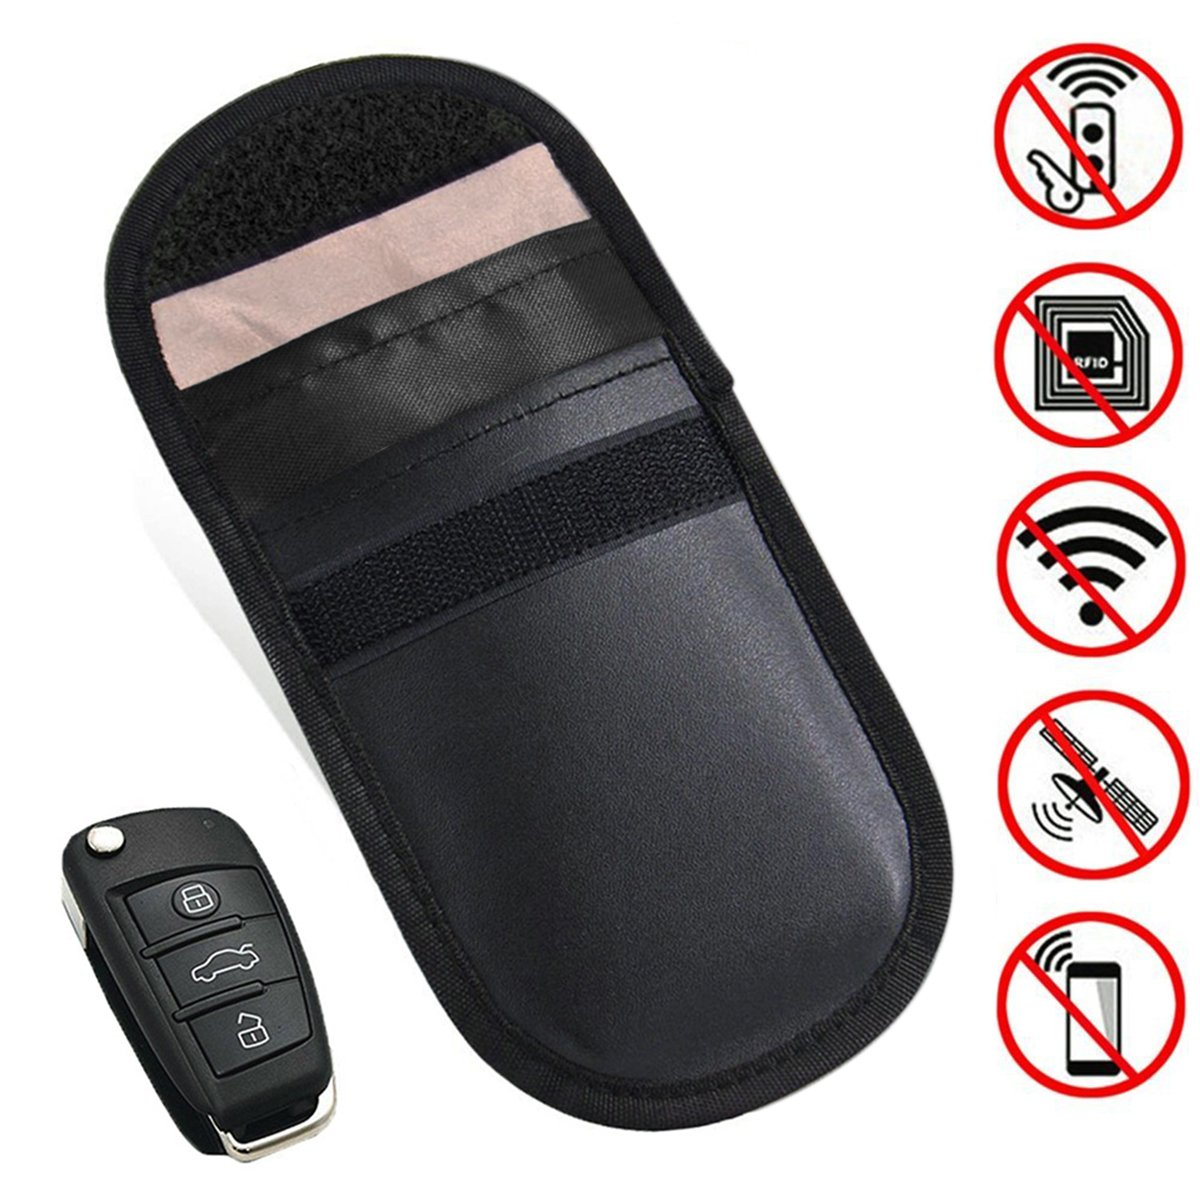 Keyfob RFID Signal Blocking Bag Faraday Cage, Key Fob Guard Protector Device Shielding, Anti-Hacking Assurance for Wireless Car Keys, KeyFOBs, Keyless Entry, Car Key Remotes, Credit Card Protection MONOJOY 4336324168